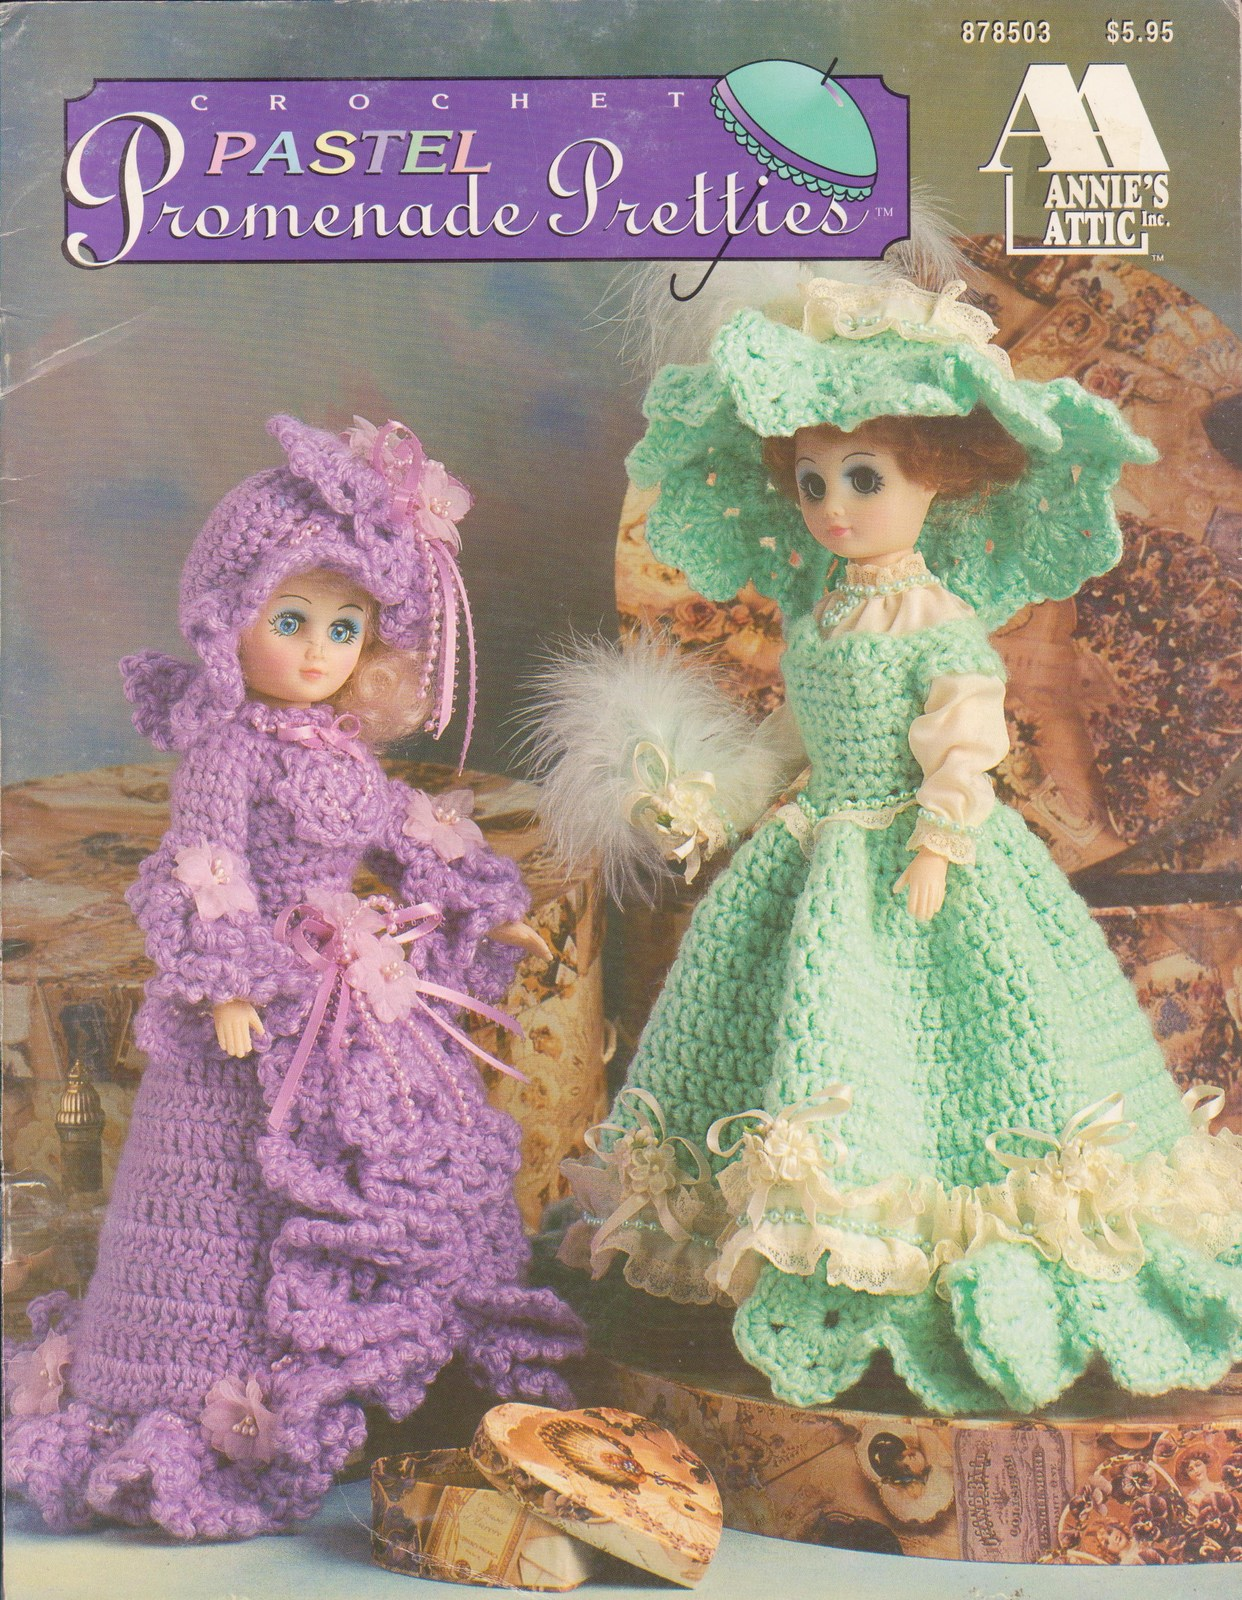 ... Crochet Patterns Doll Clothing Annies Attic 4 Designs - Doll Clothing